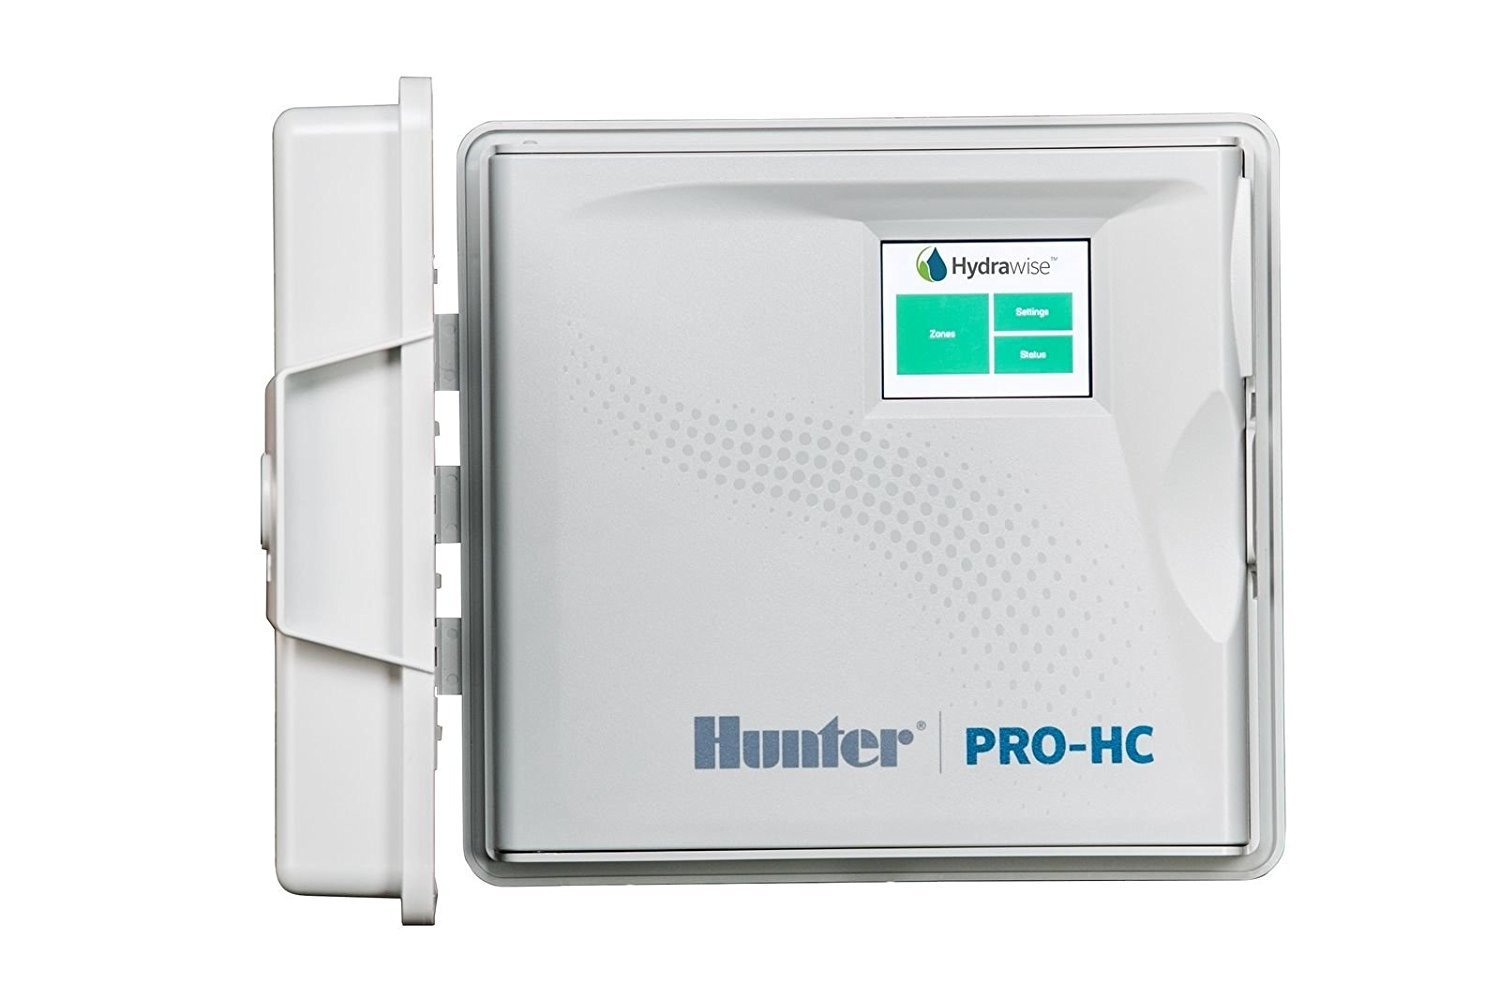 Hunter PRO-HC PHC-600i 6 Zone Indoor Residential / Professional Grade Wi-Fi Controller With Hydrawise Web-based Software - 6 Station Timer - Internet Android iPhone App